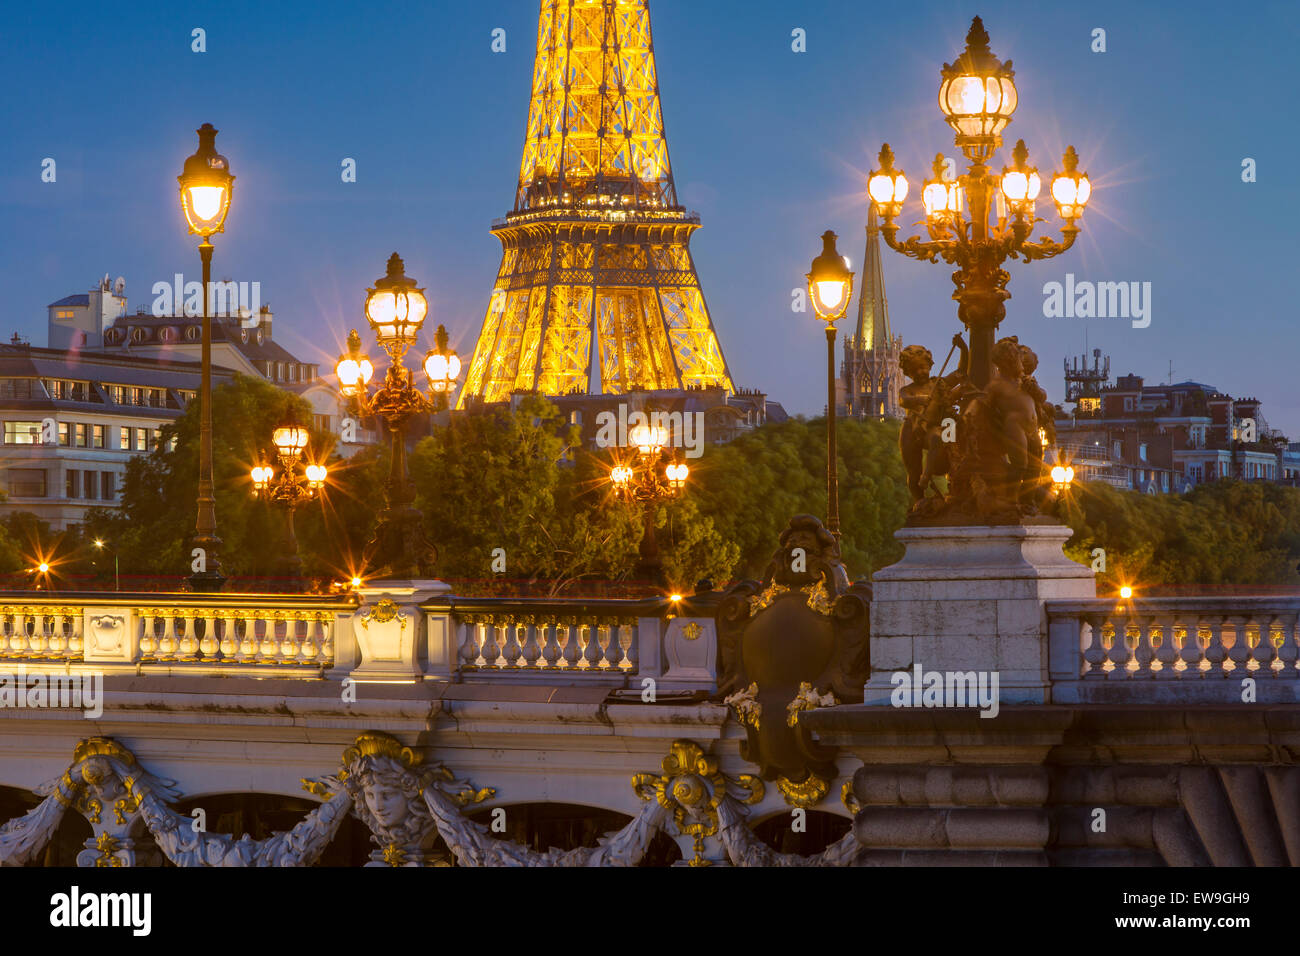 Plus de crépuscule lumières de Pont Alexandre III à la Tour Eiffel au-delà, Paris, Ile-de-France, Photo Stock